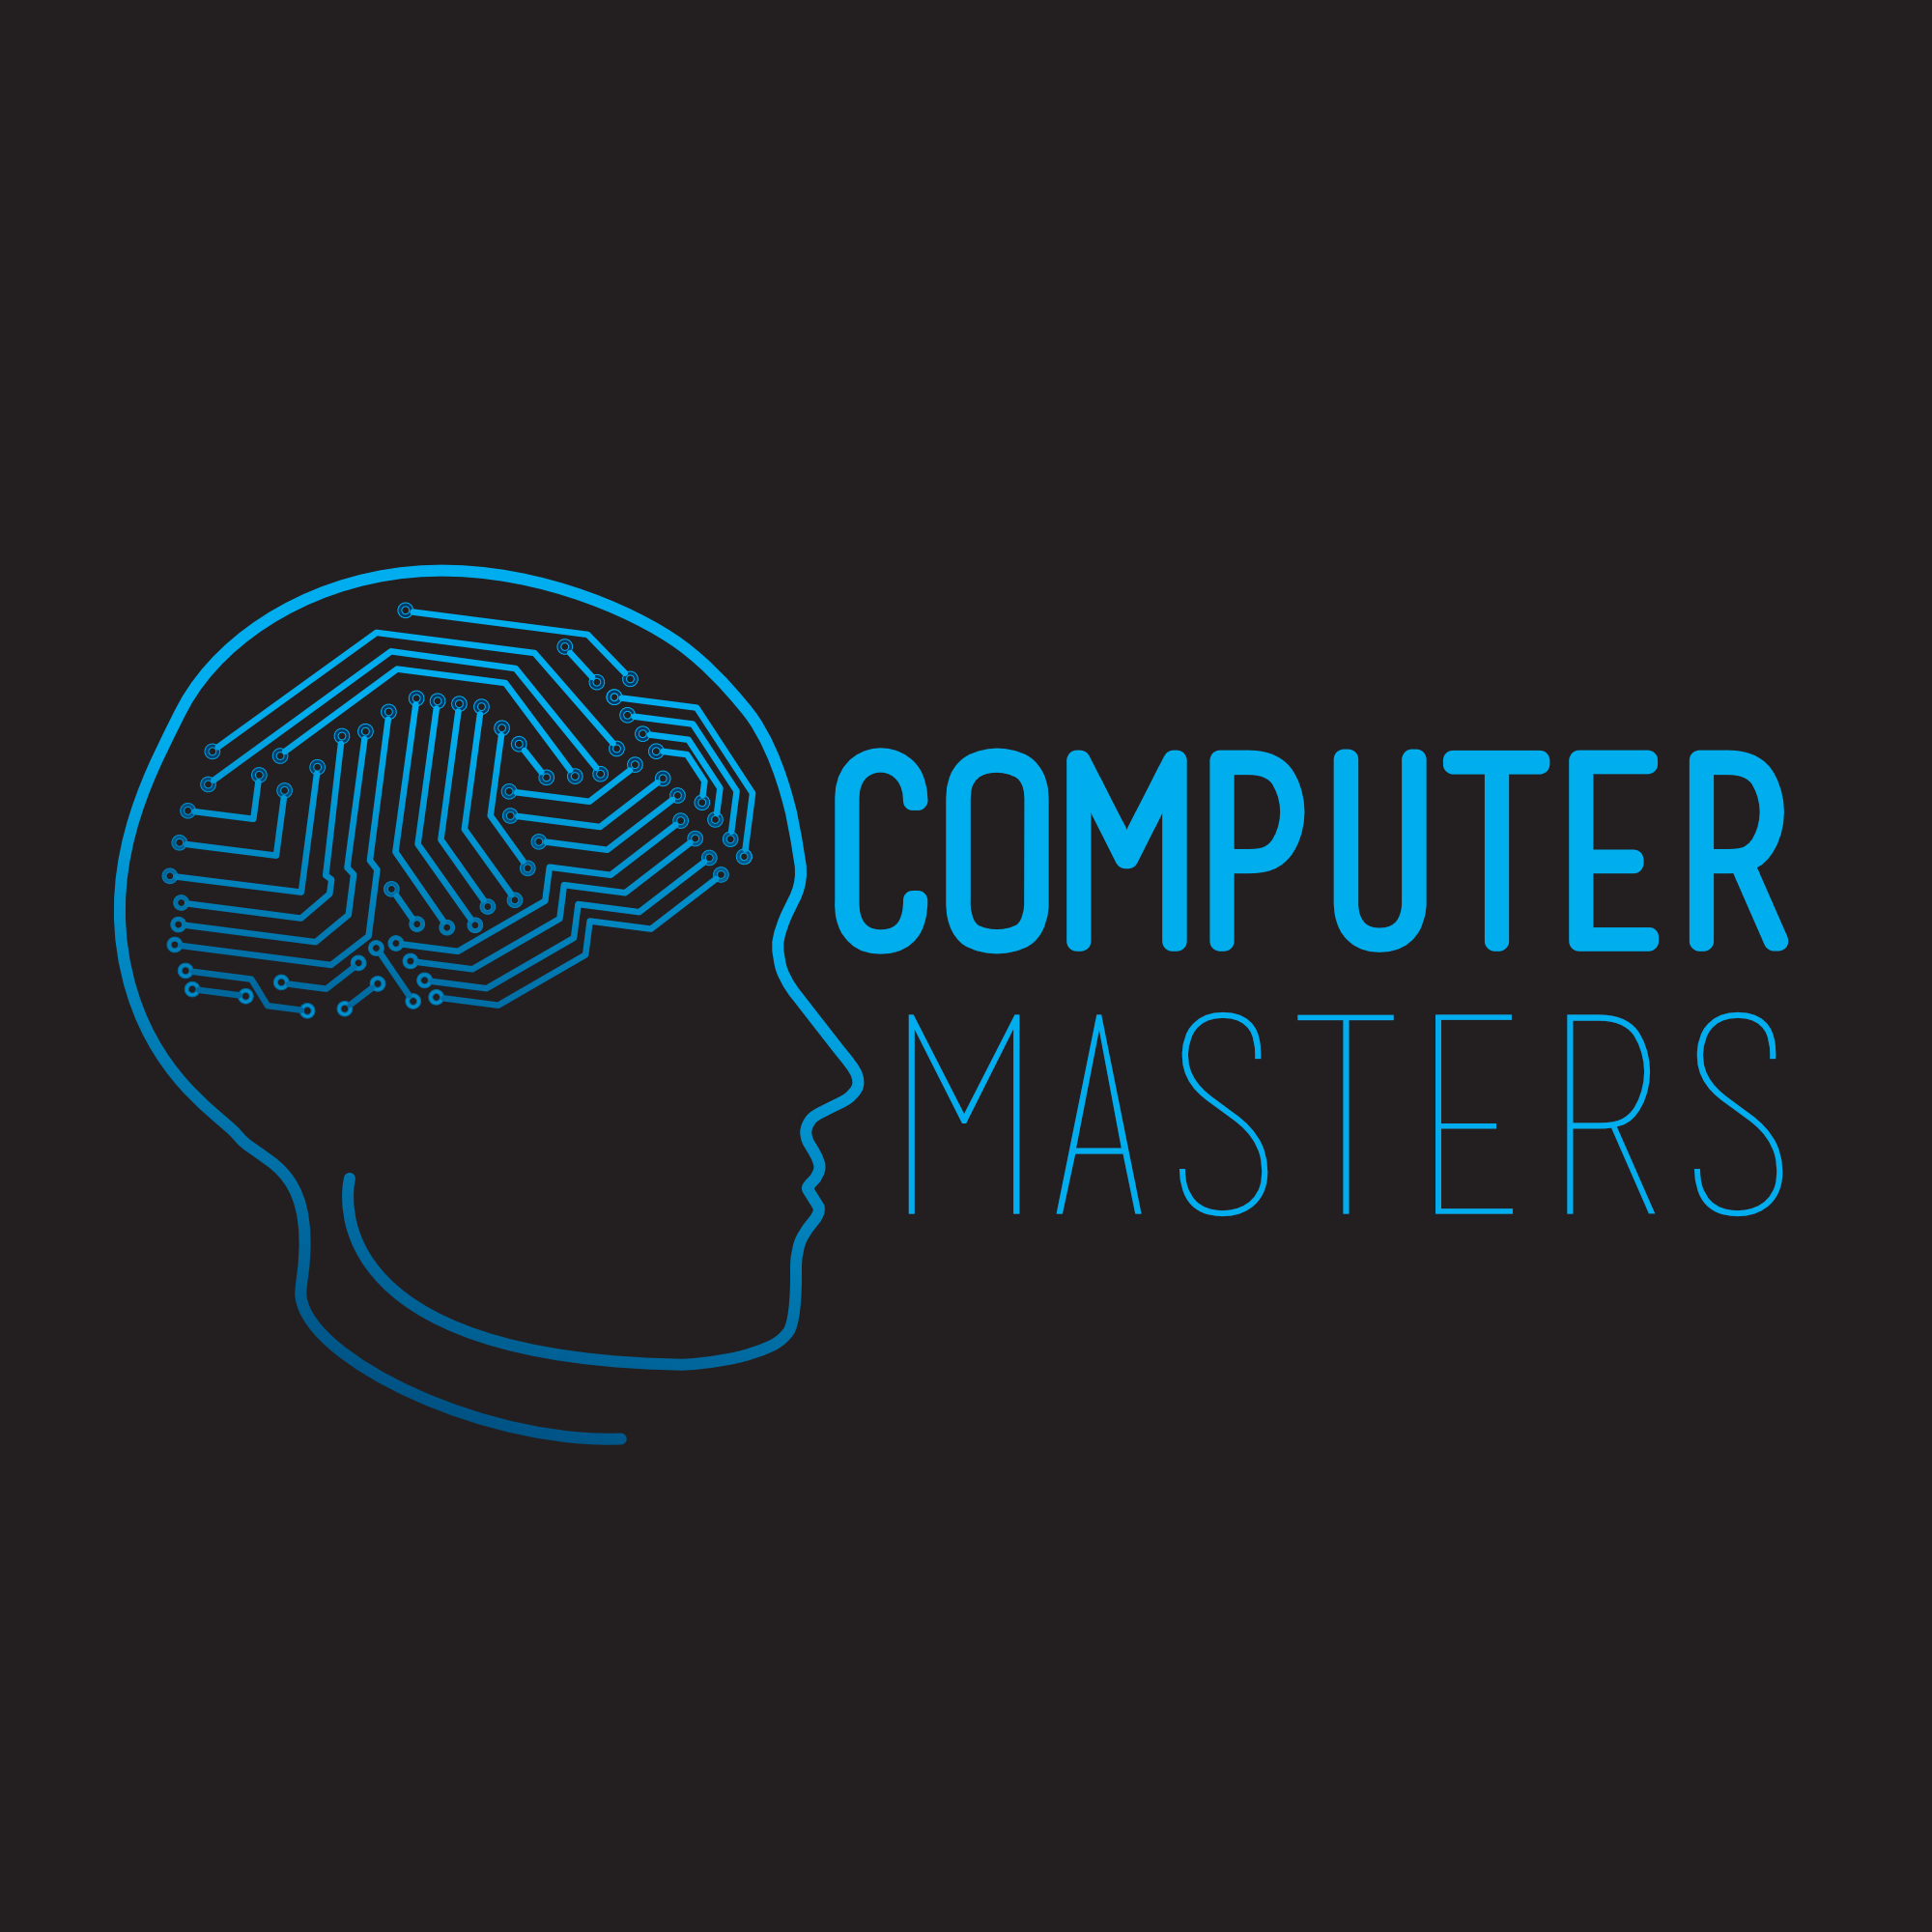 Computer Masters